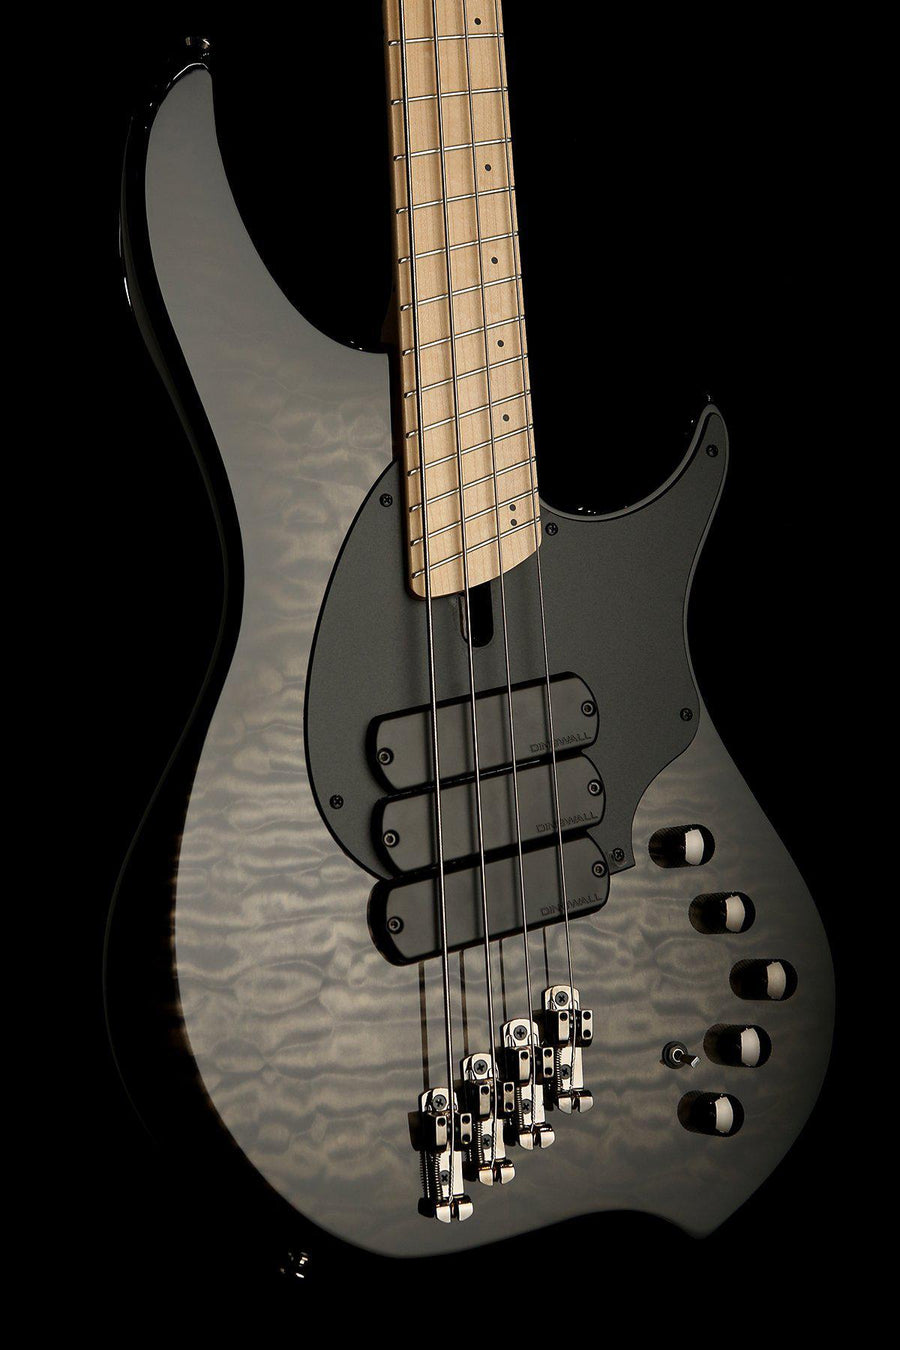 Bass Guitars - 2019 Dingwall Combustion 4 Quilt Top 3X Trans Black